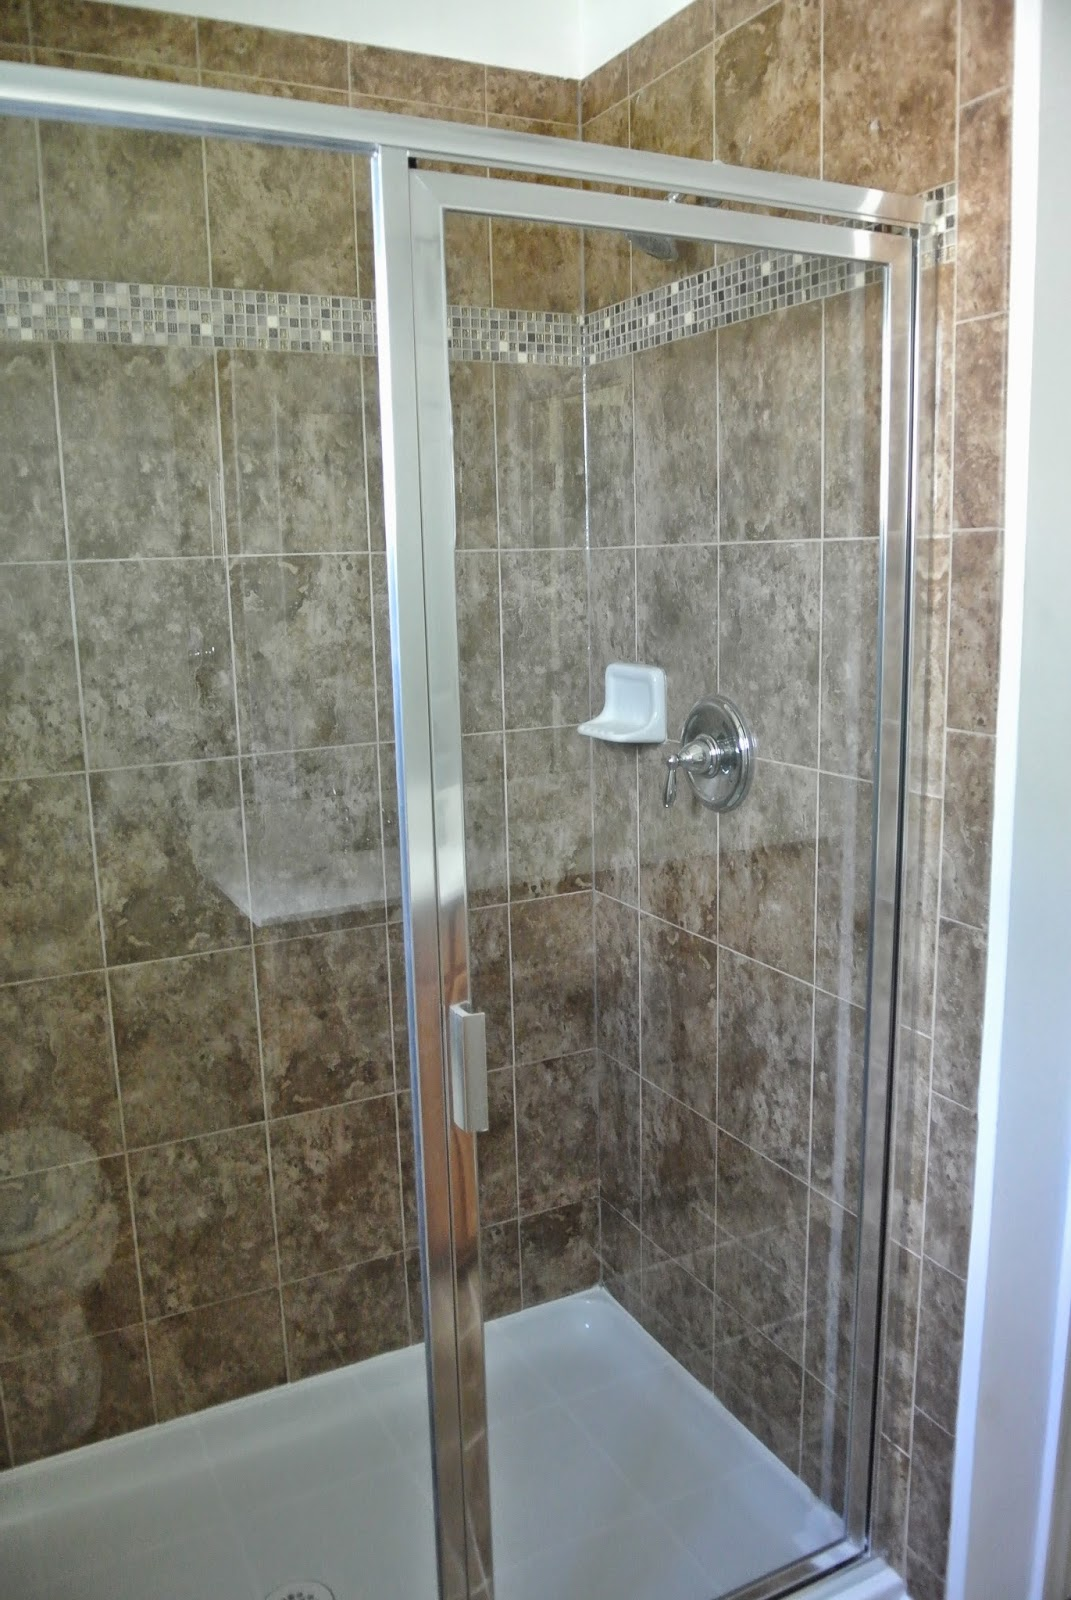 A picture of the installed shower door